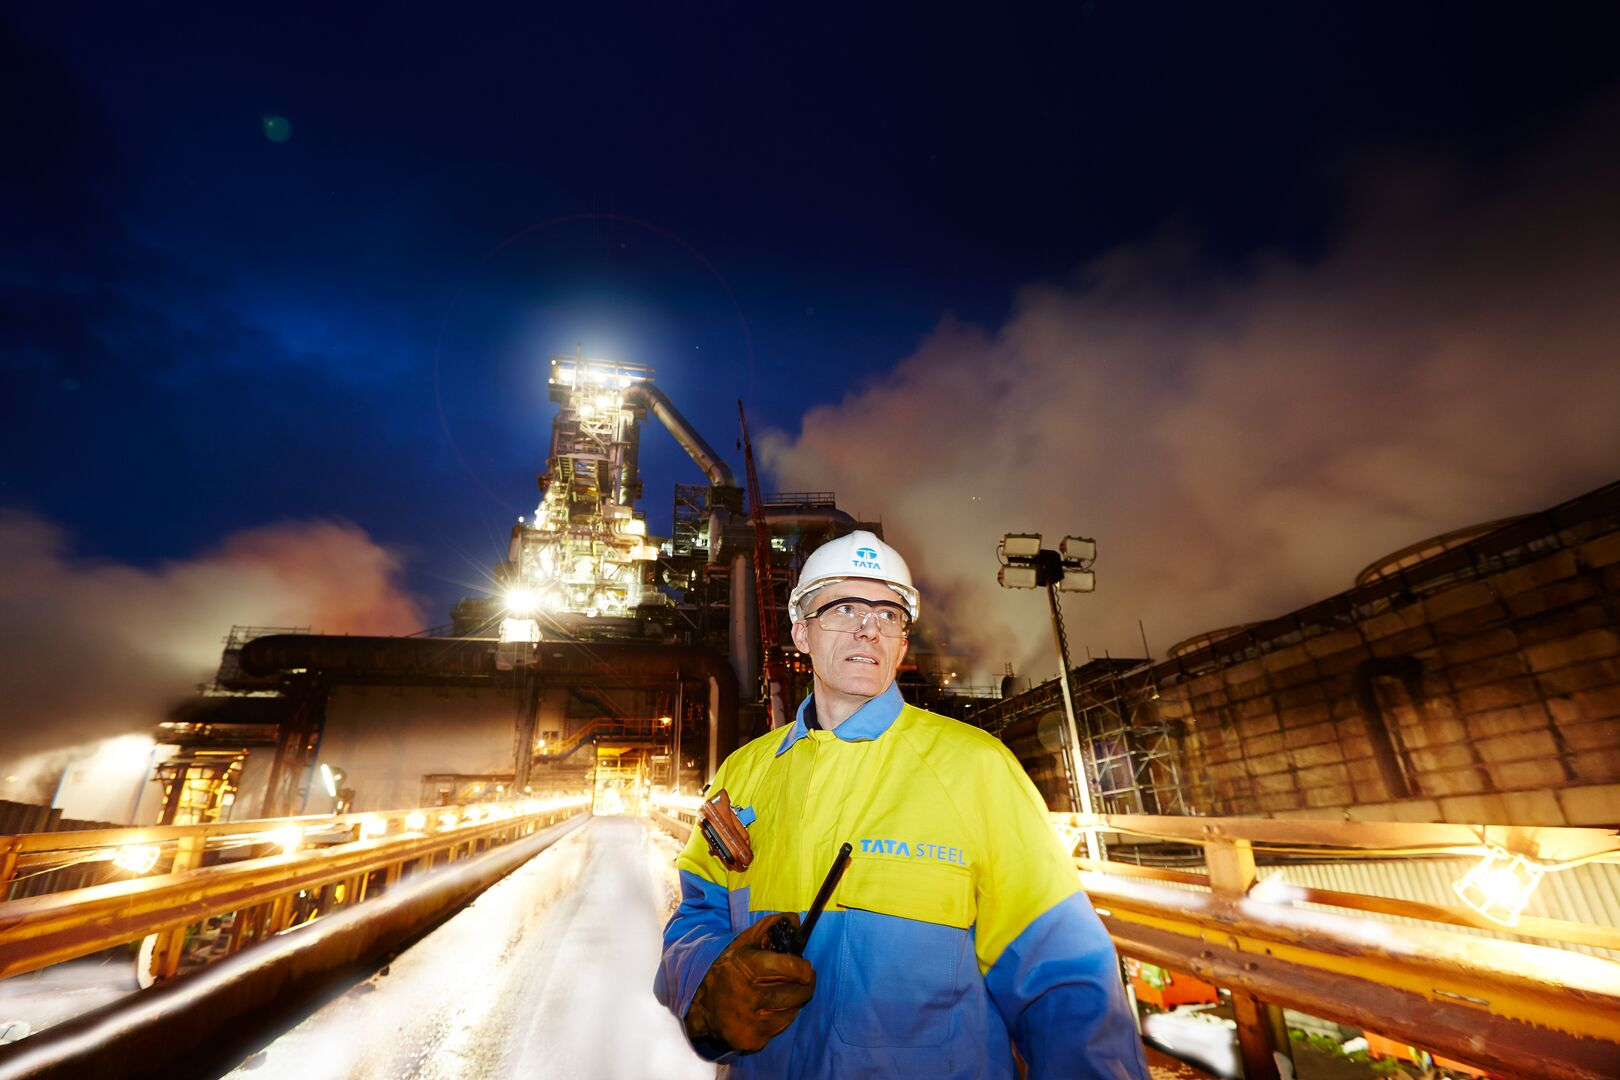 Tata Steel employee at Port Talbot site with blast furnace in the background